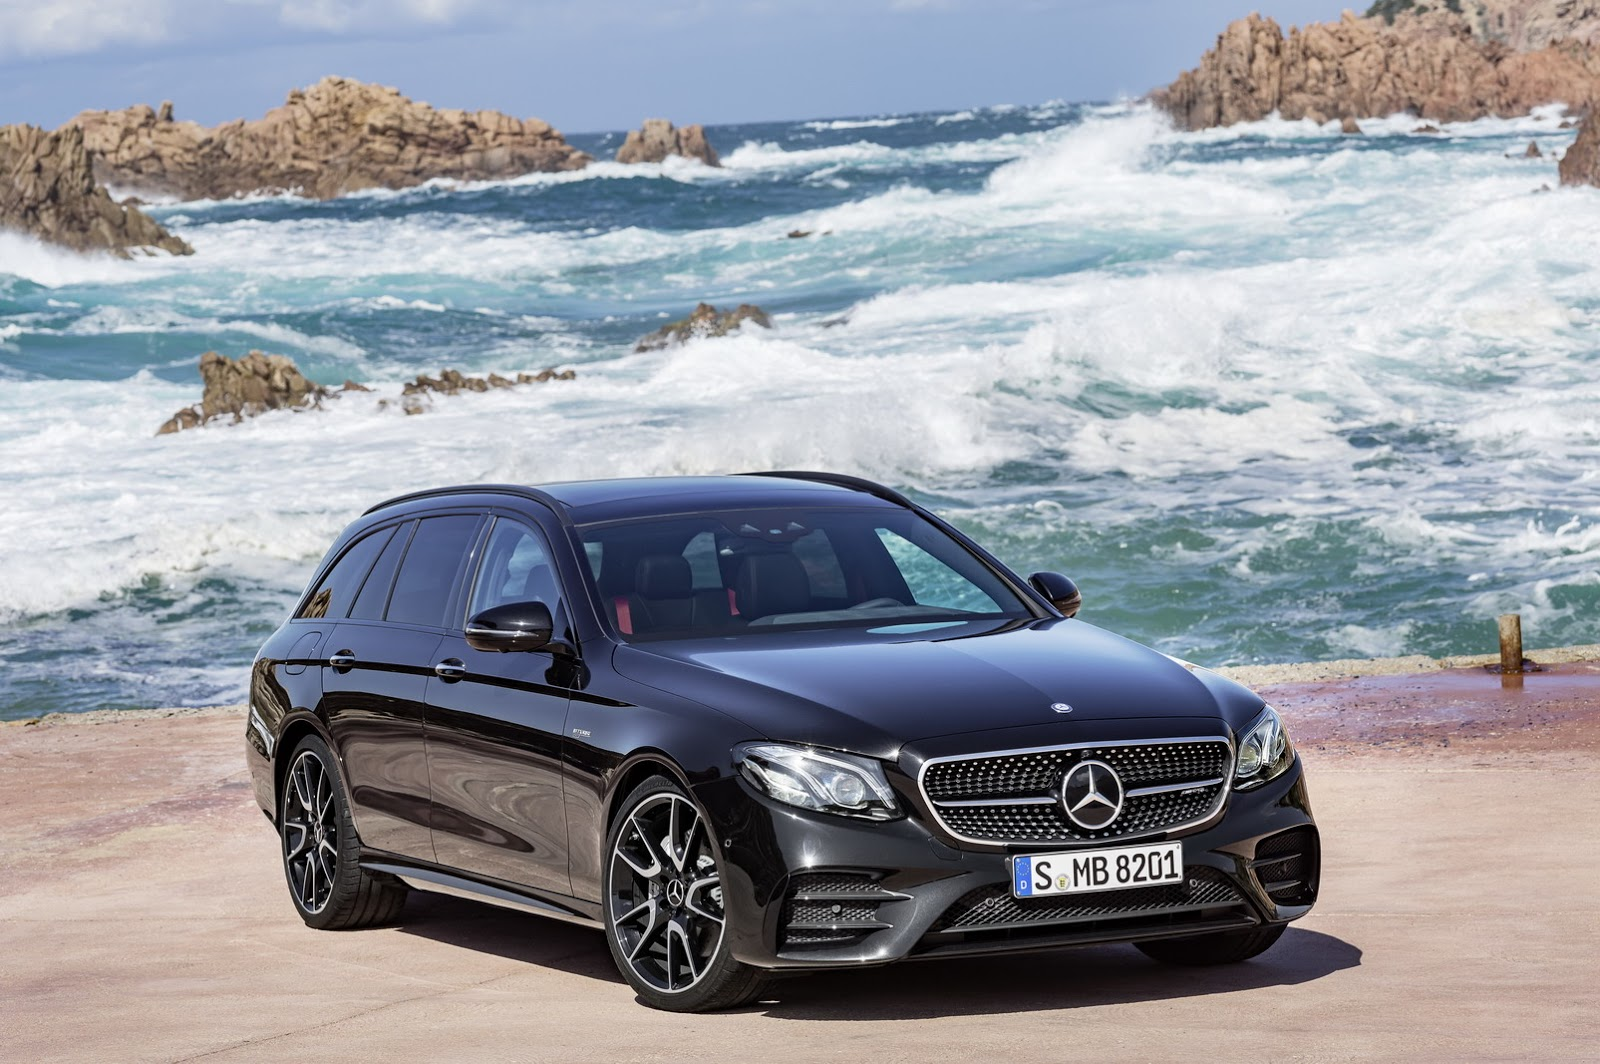 new 2017 mercedes benz e class estate unveiled gets 396hp e43 amg variant 79 pics carscoops. Black Bedroom Furniture Sets. Home Design Ideas